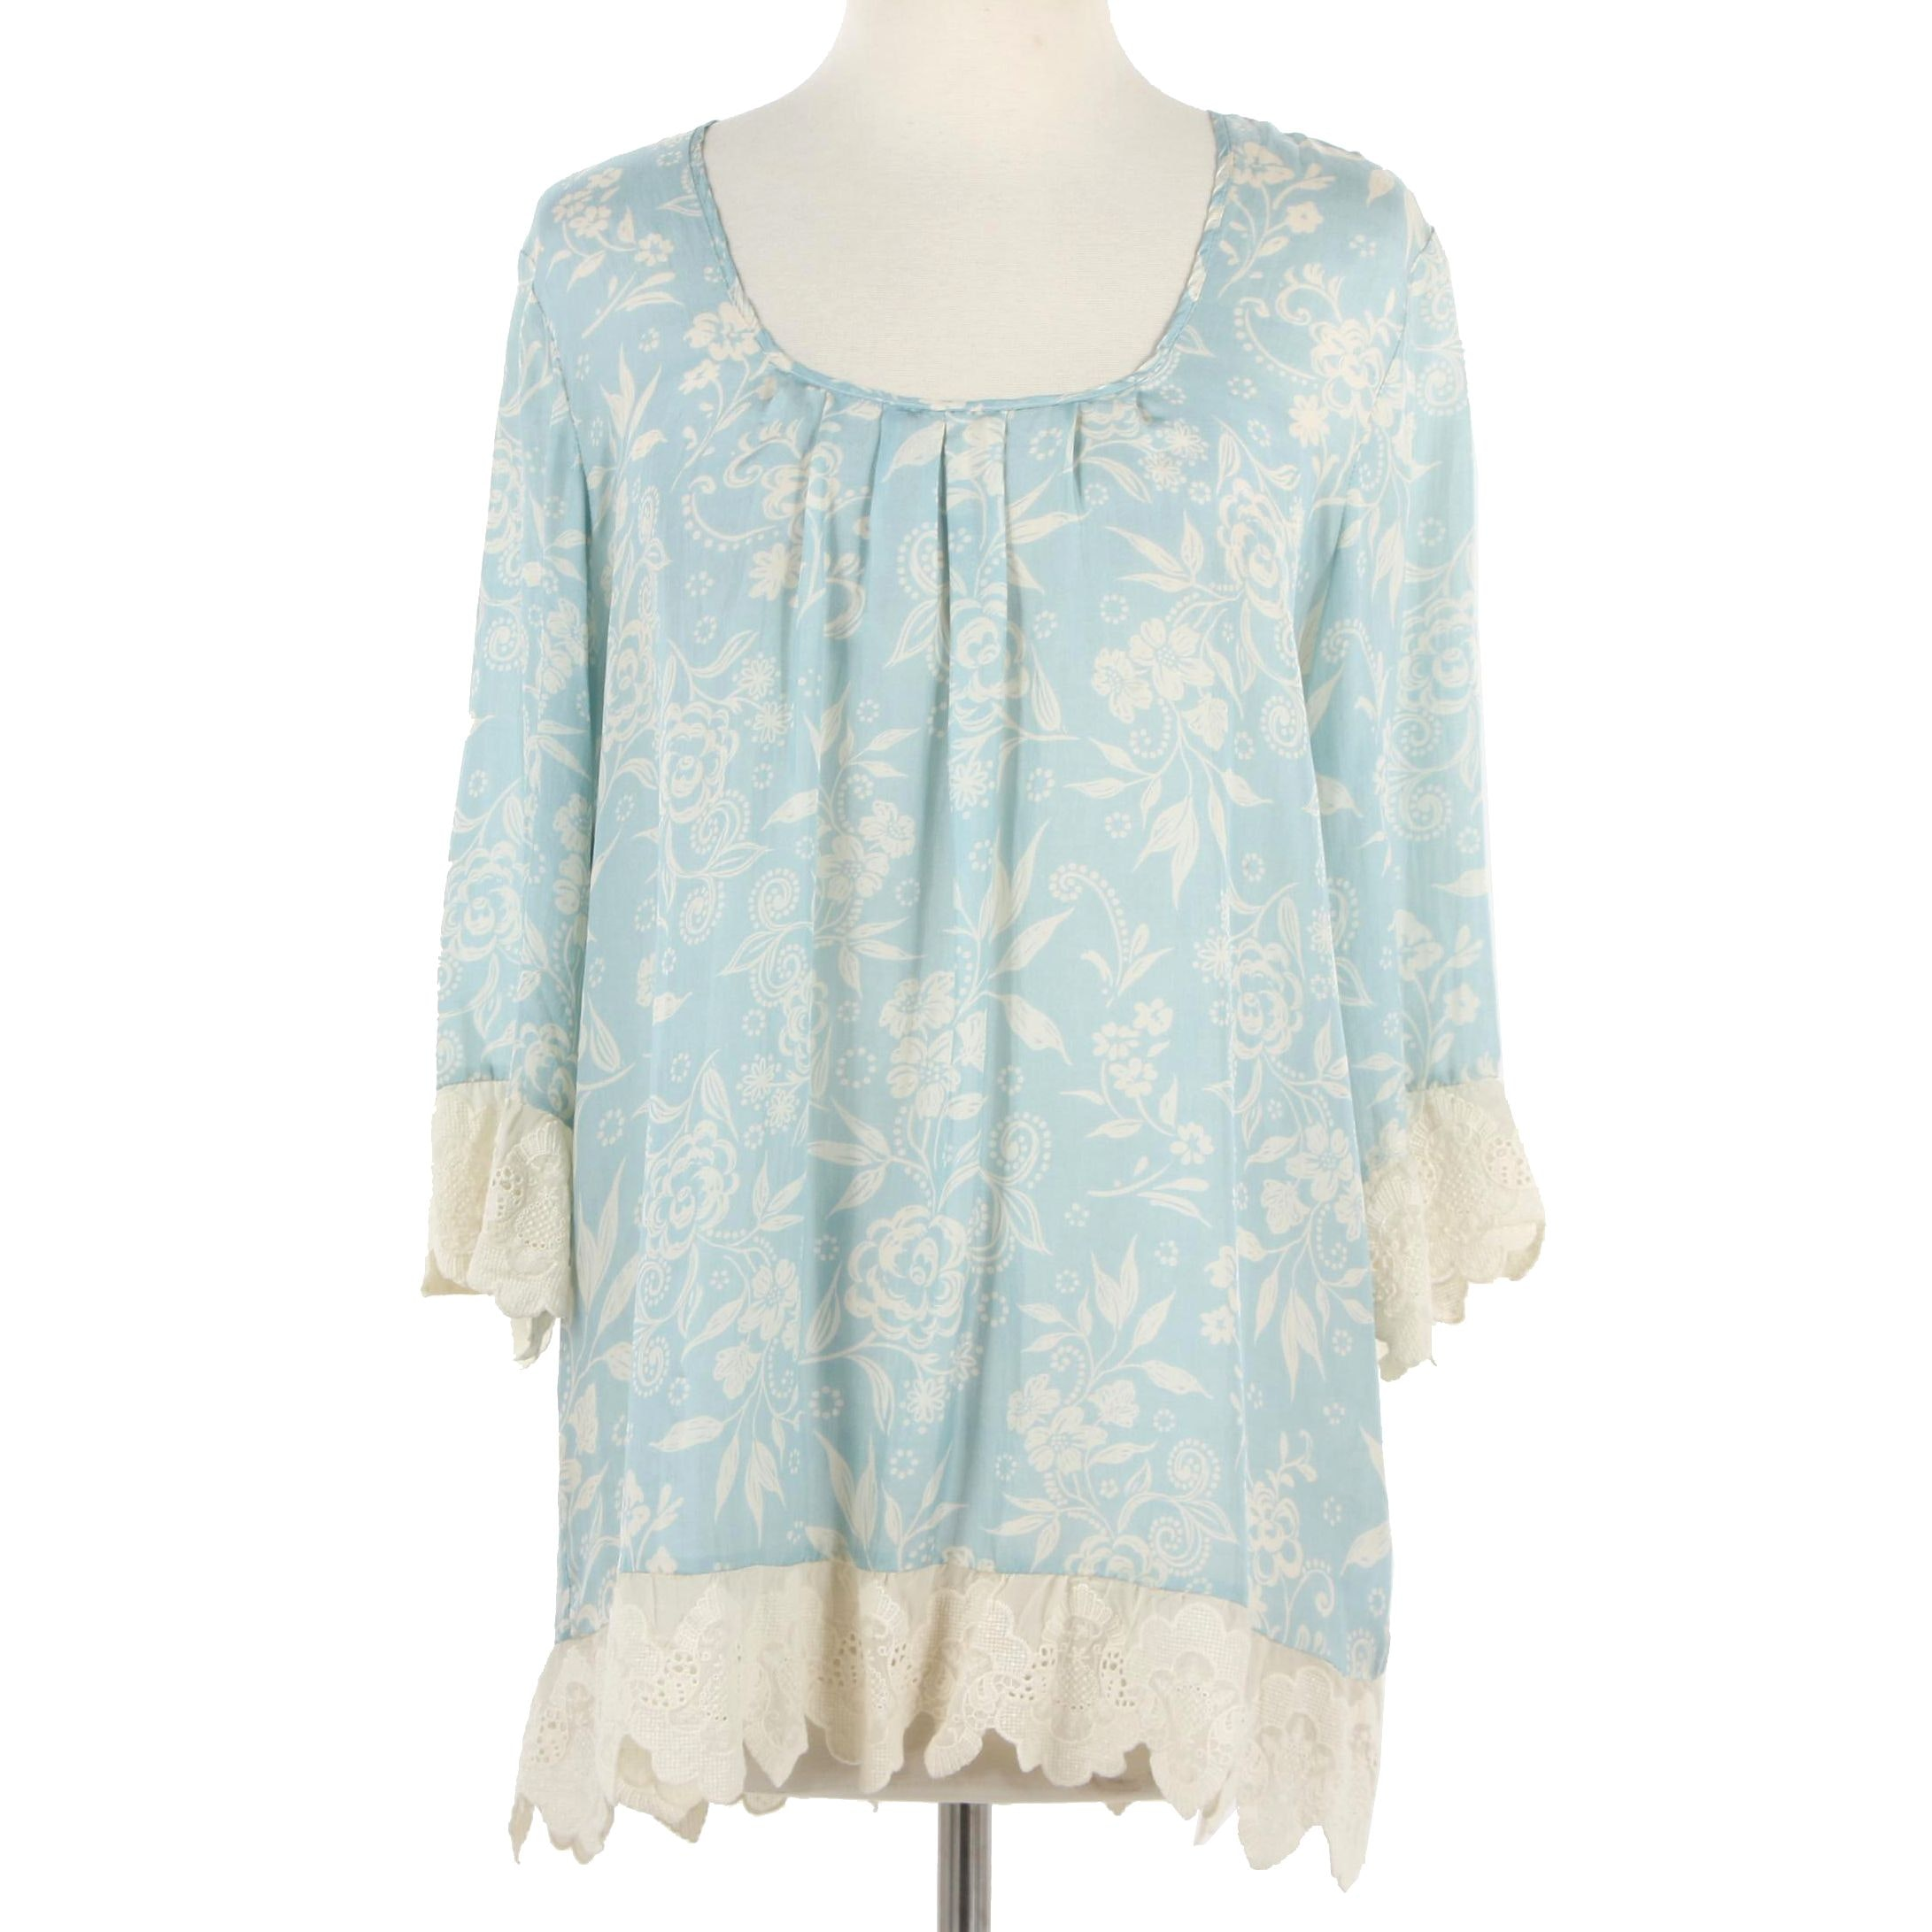 Johnny Was Silk Floral Print Blouse with Lace Trim